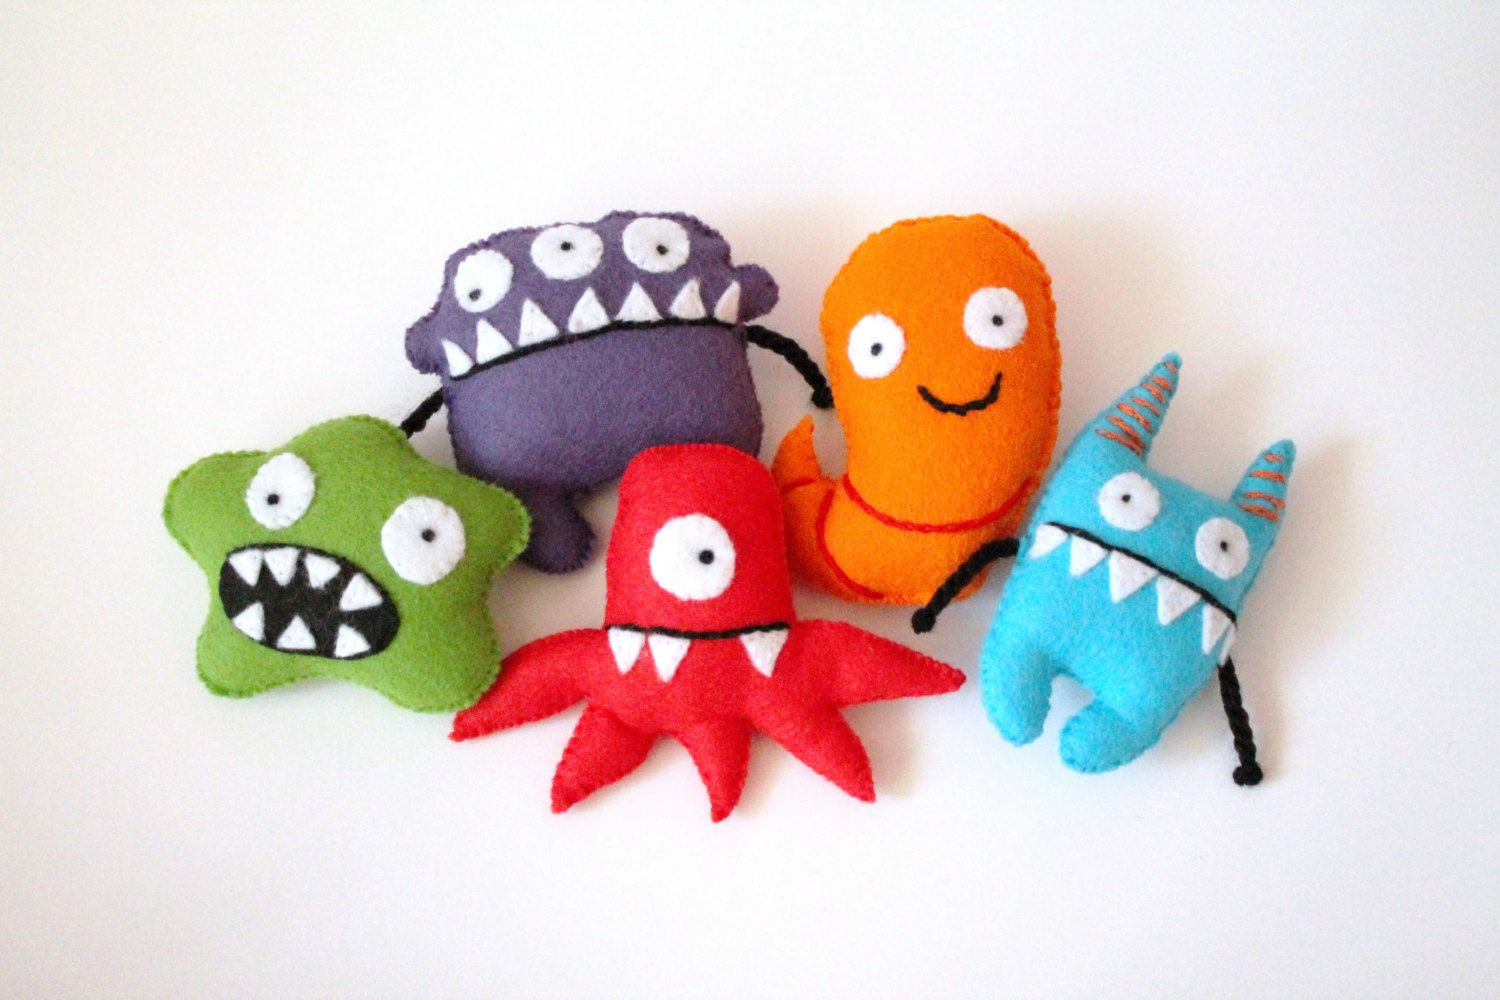 Individual Felt Monster - Plush Monster Toys - Handmade Felted Toy Character. £12.00, via Etsy.